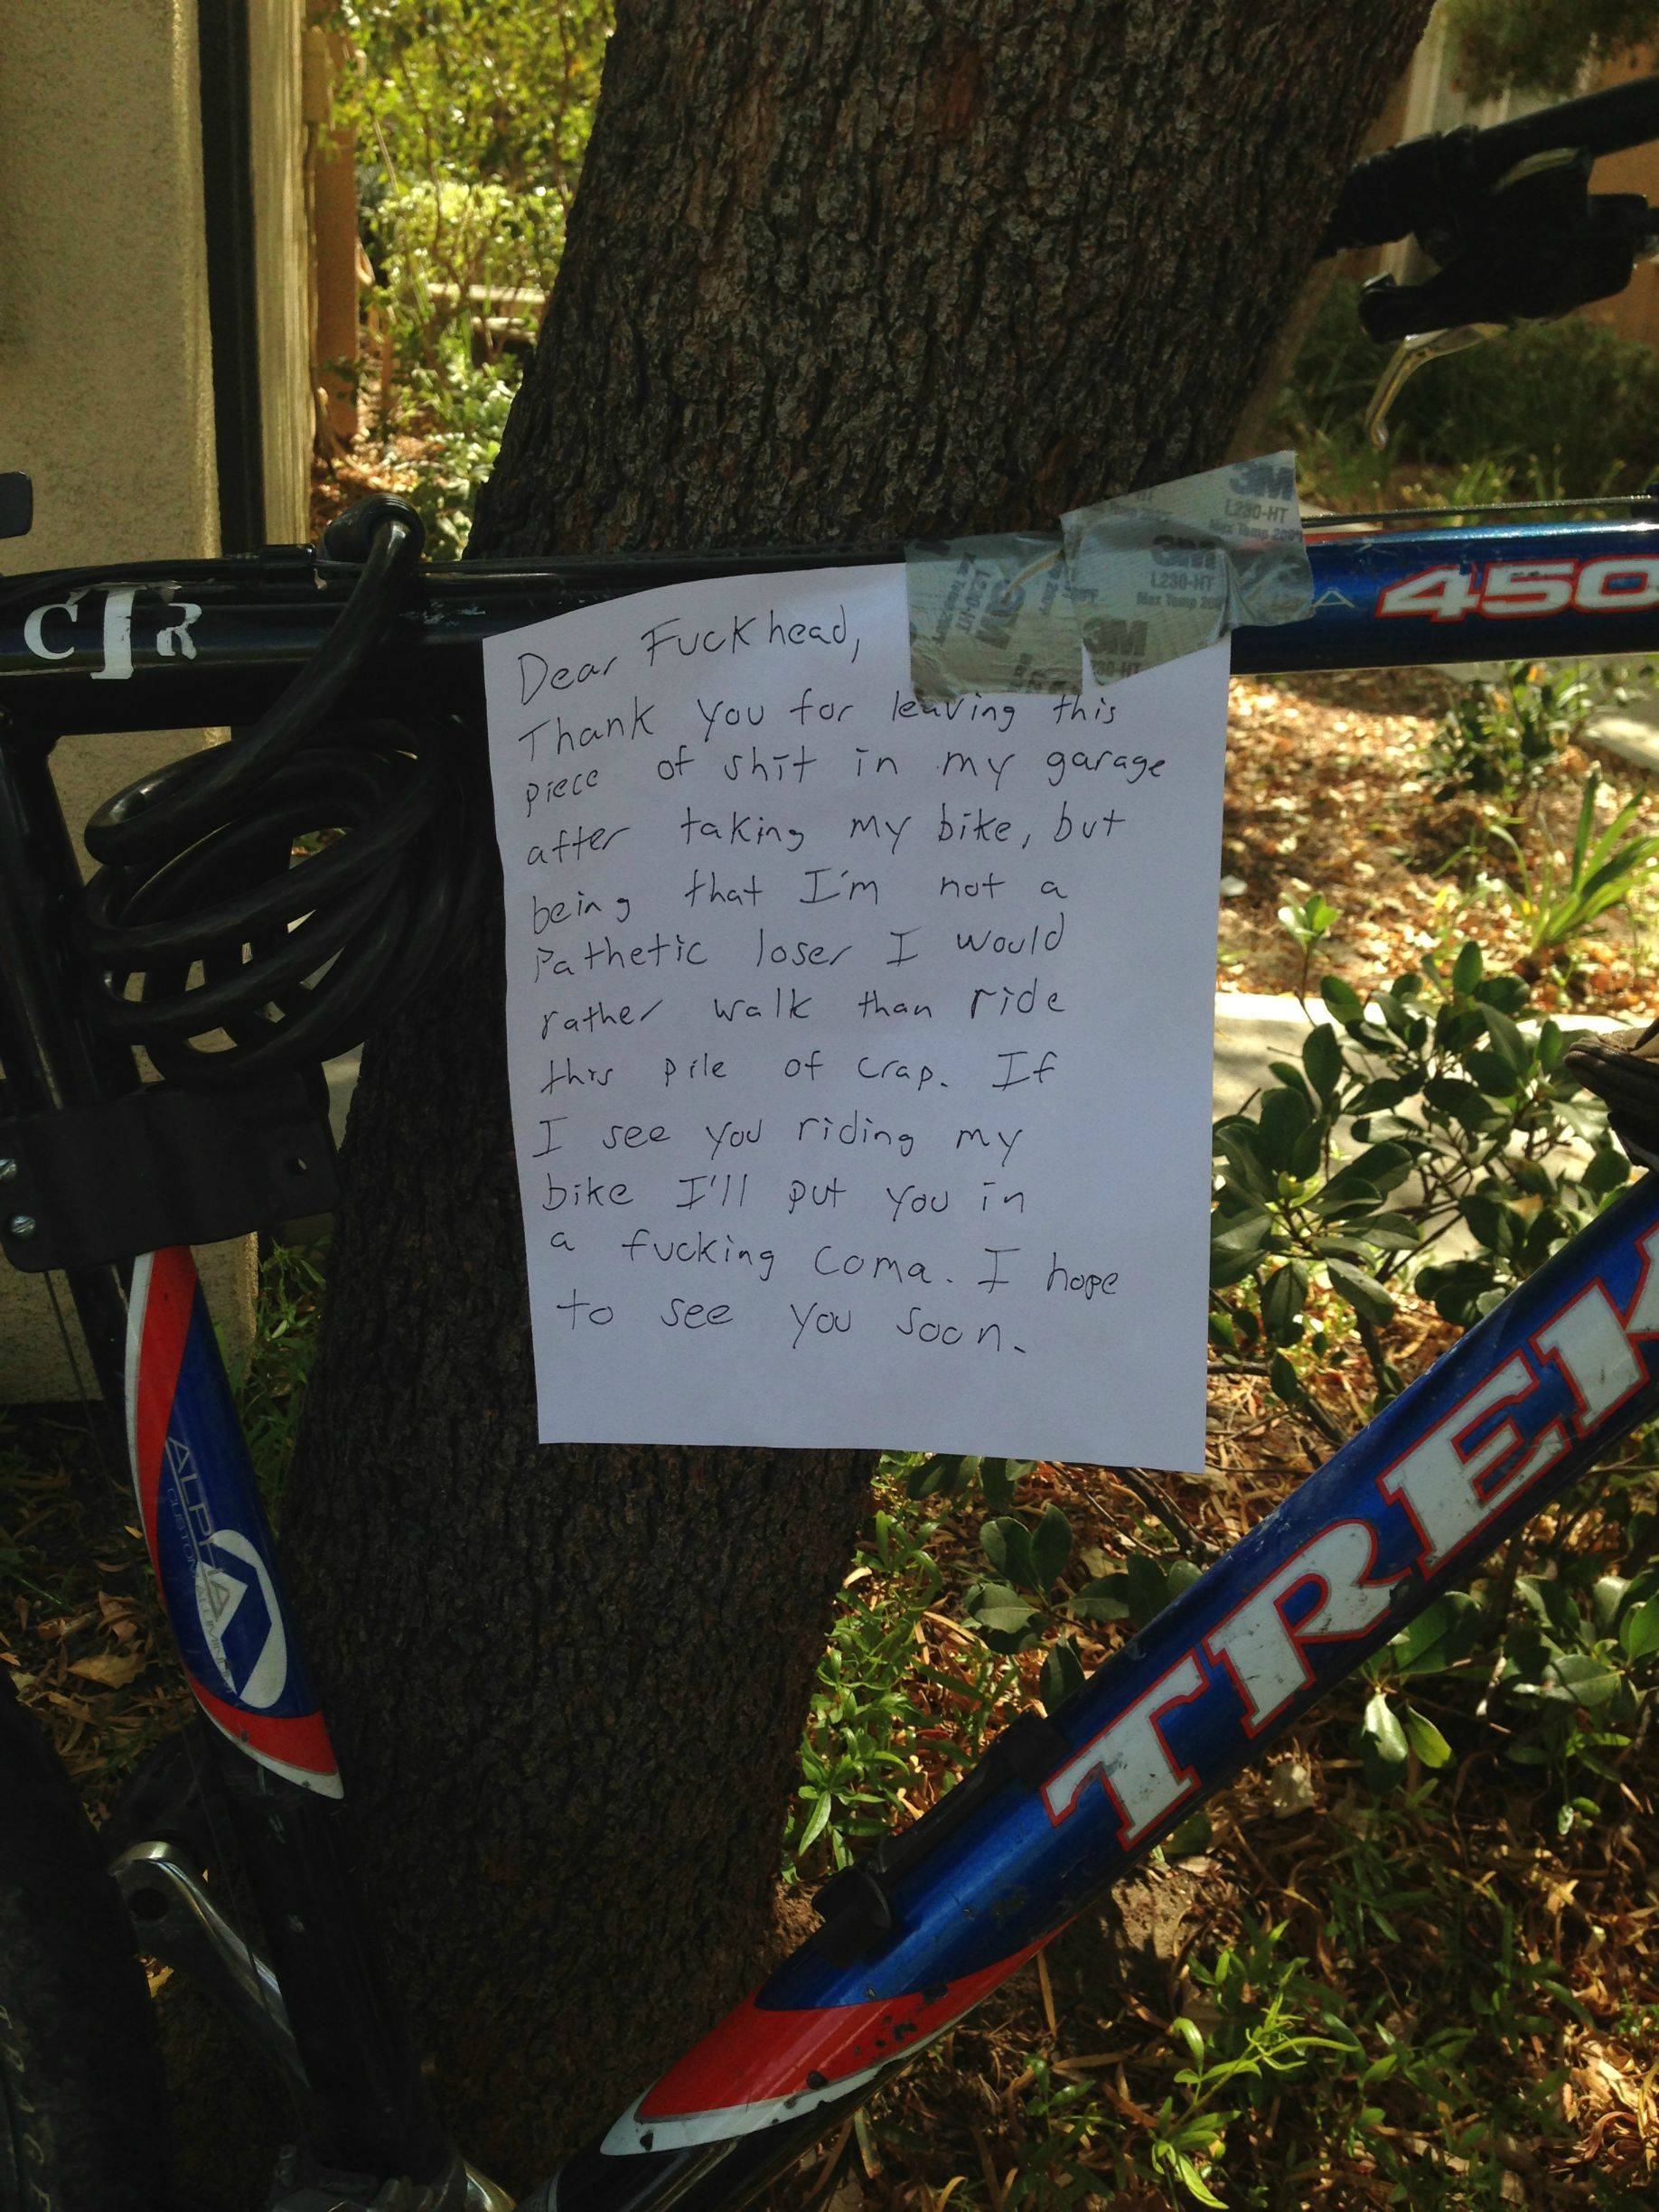 A guy's bike was stolen from his garage, with a far crappier bike left in its place. He wasn't cool with it.